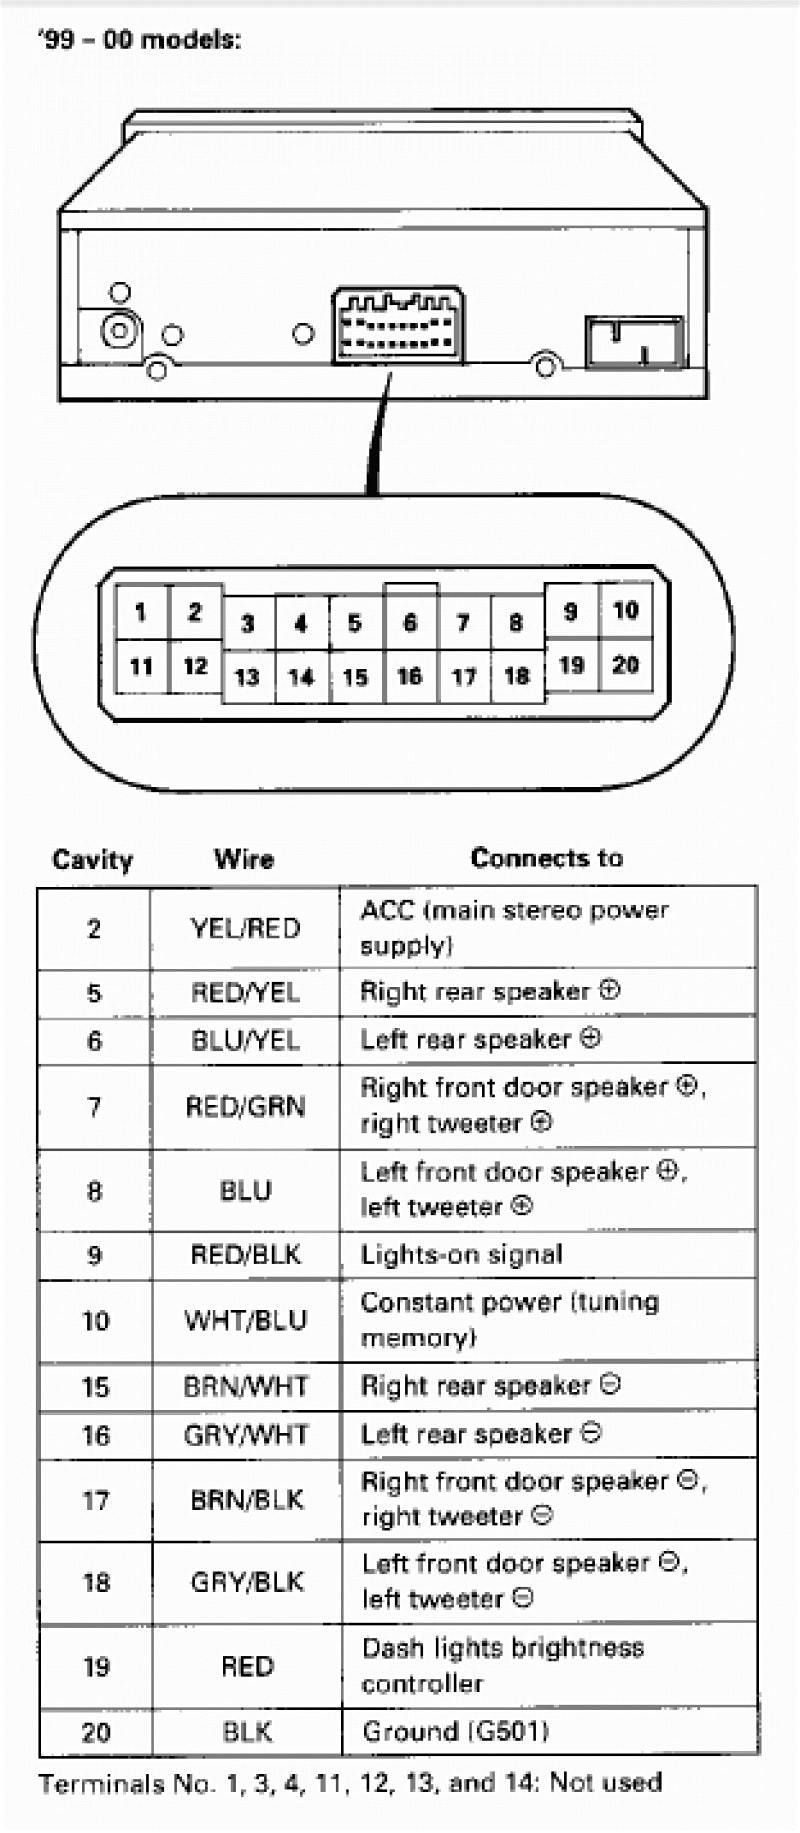 45 New 2006 Honda Civic Radio Wiring Diagram In 2020